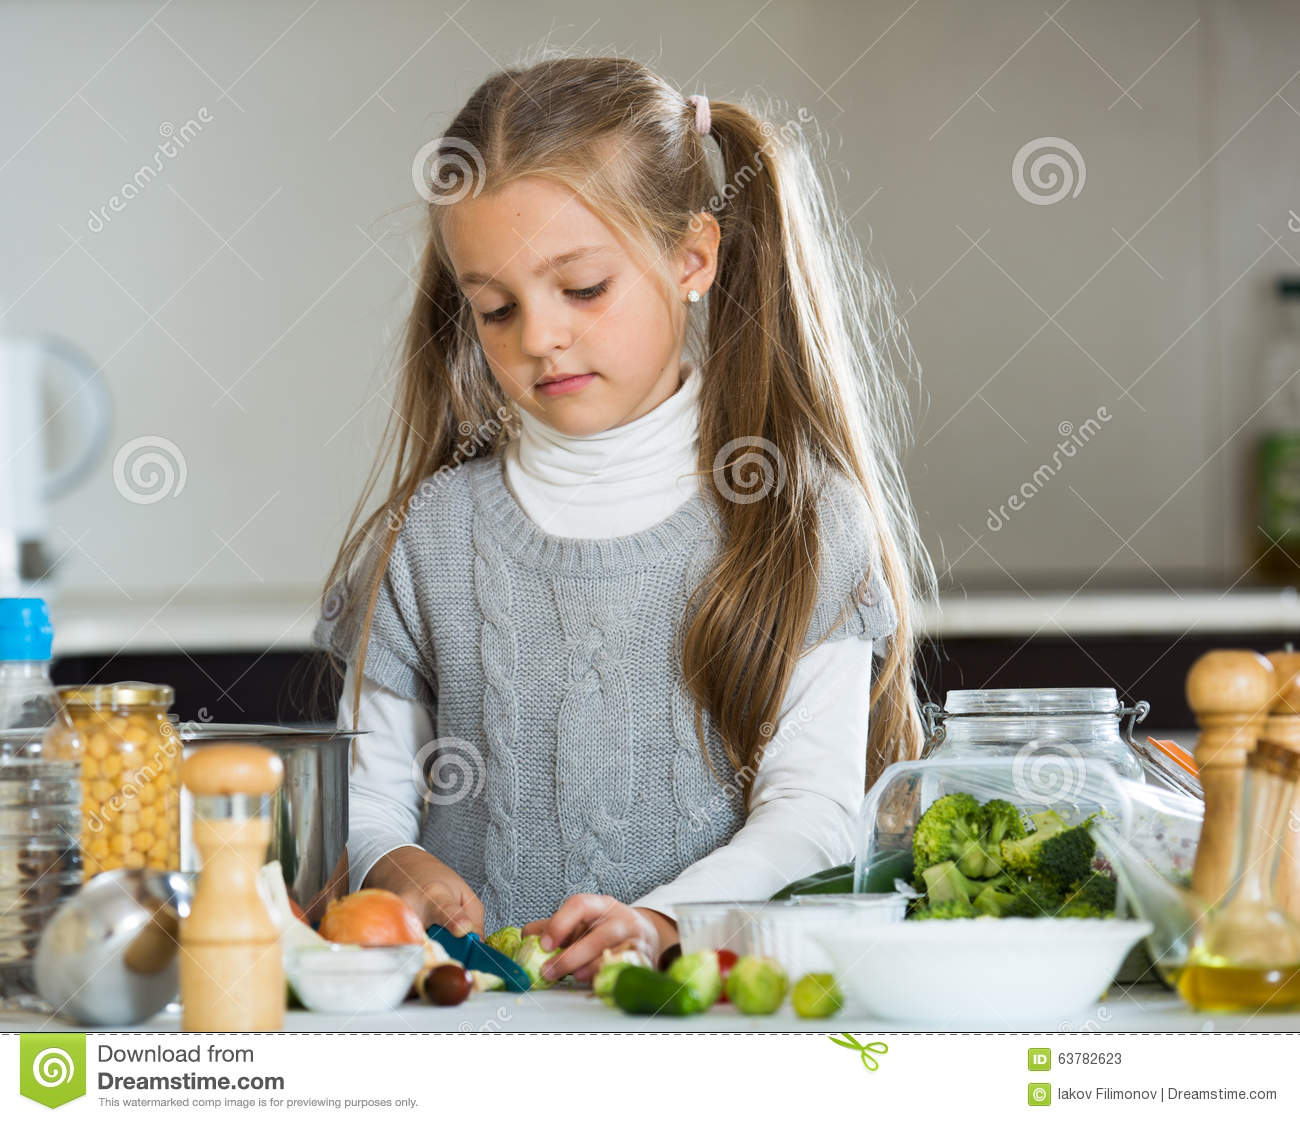 petite fille mignonne faisant cuire des veggies dans la cuisine photo stock image 63782623. Black Bedroom Furniture Sets. Home Design Ideas